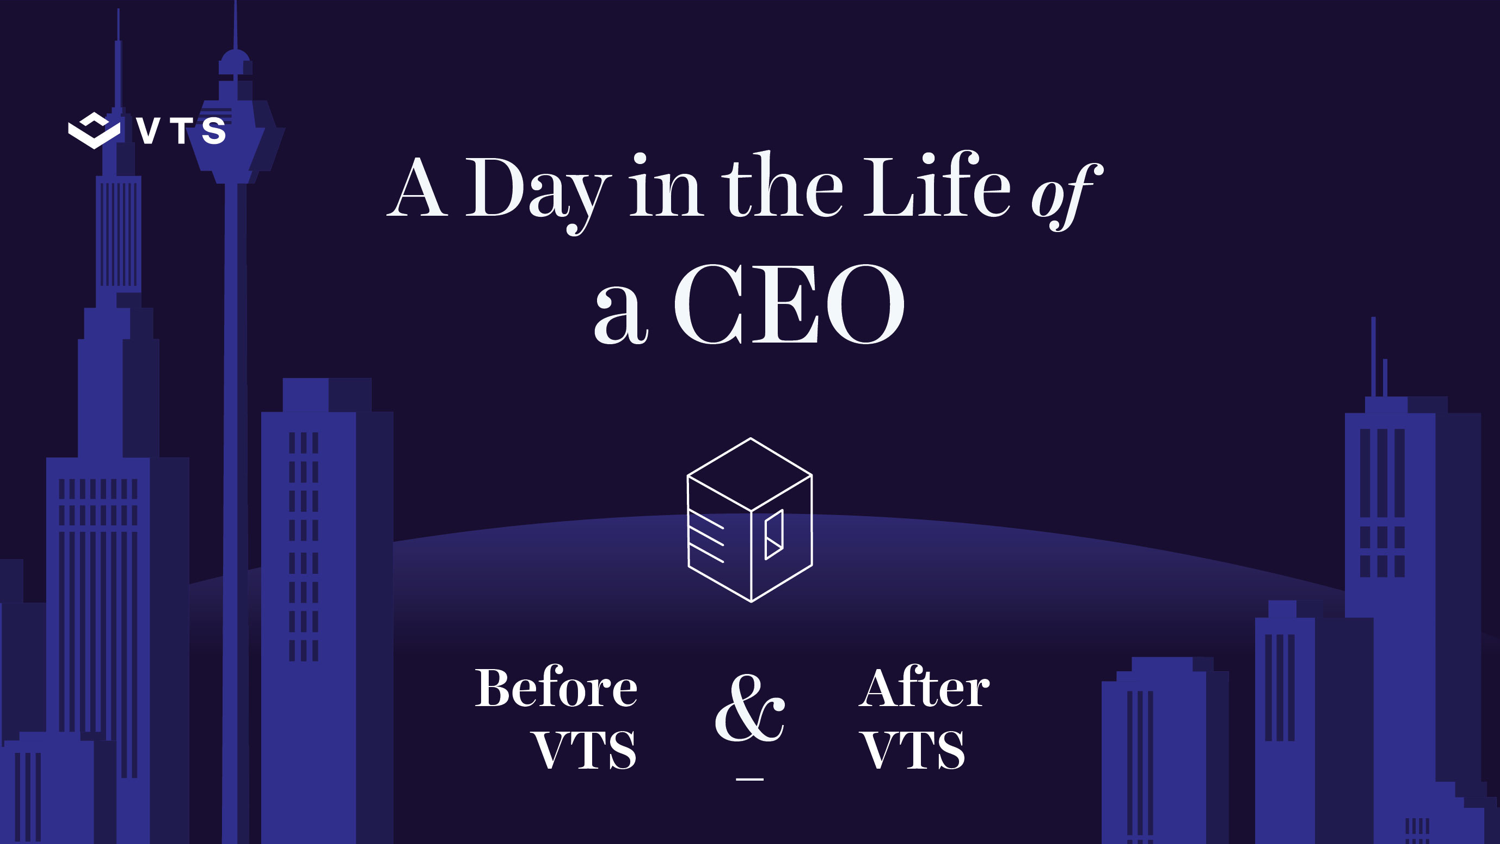 Day in the Life of a CEO Before and After VTS Infographic